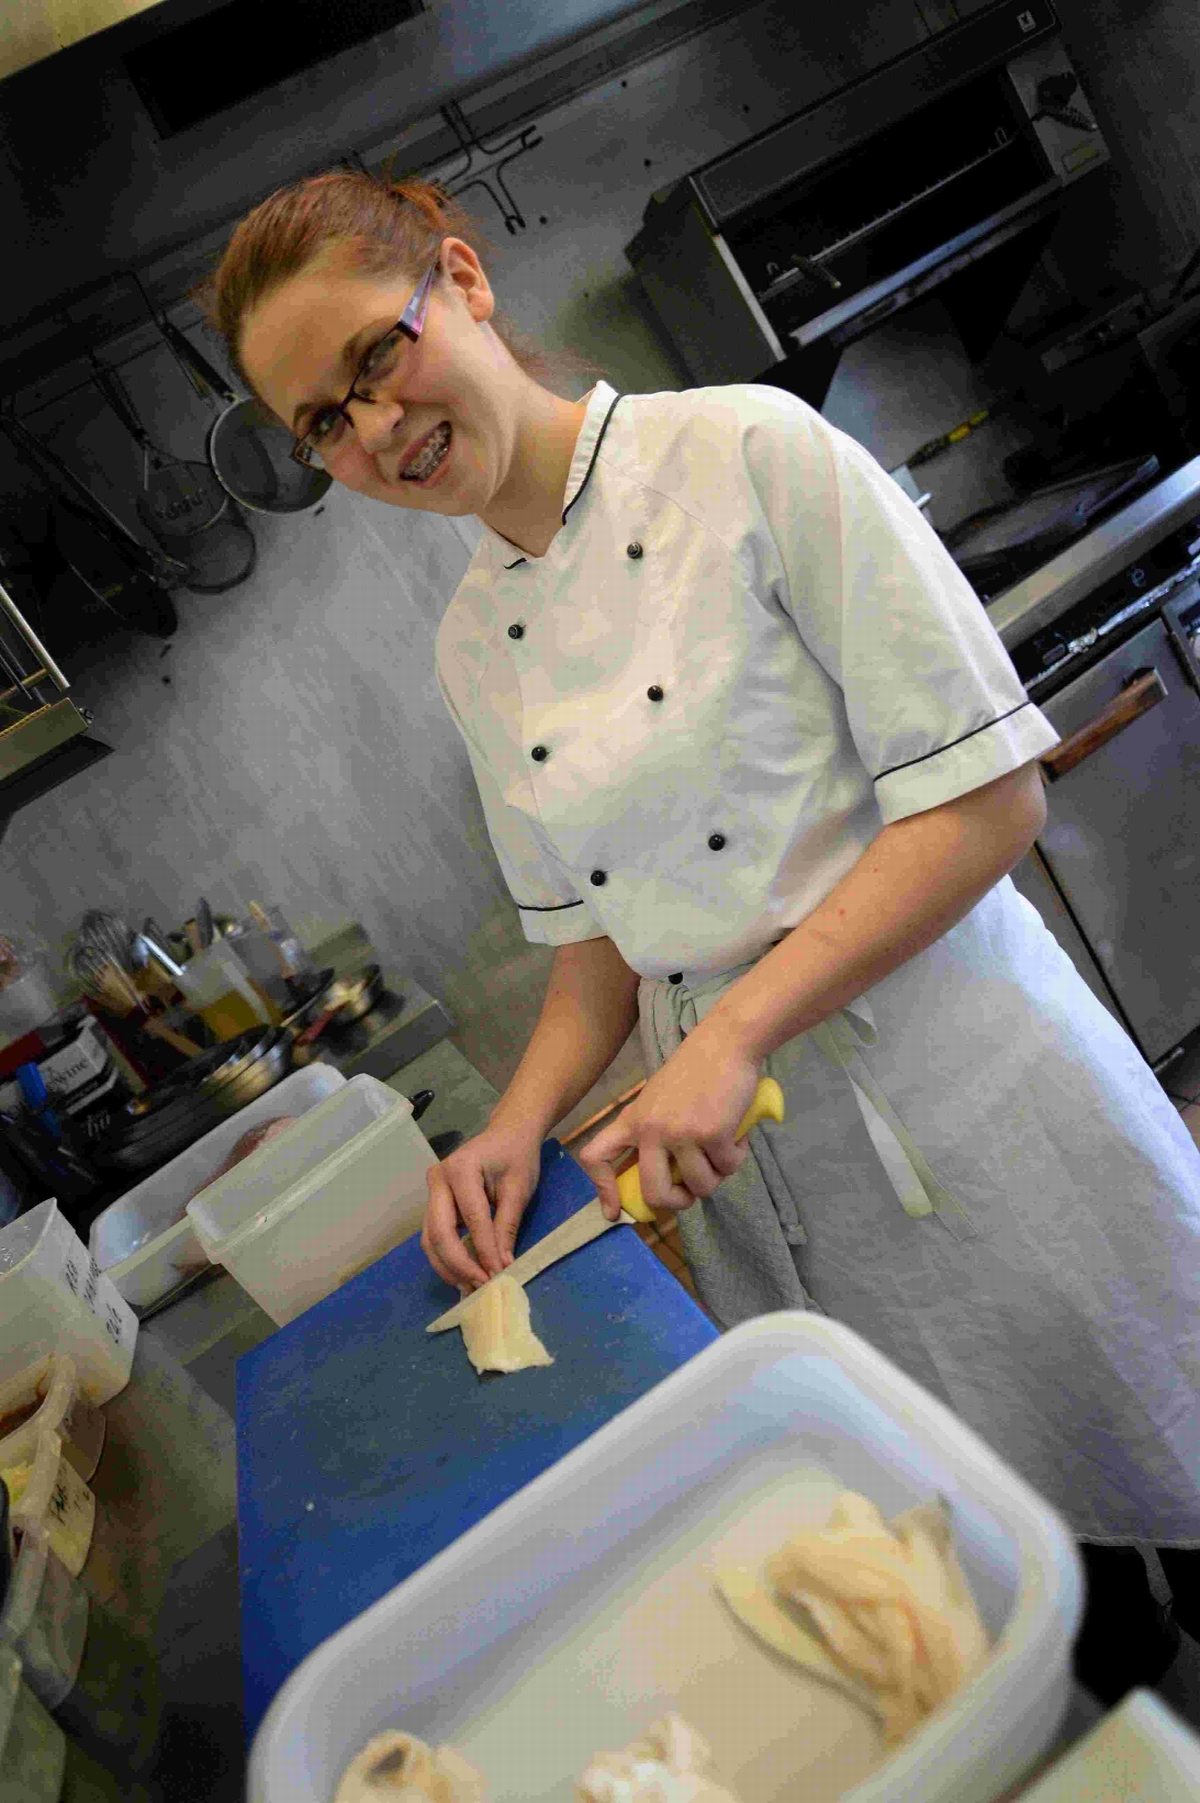 COOKING UP A STORM: Apprentice chef Crystal Old